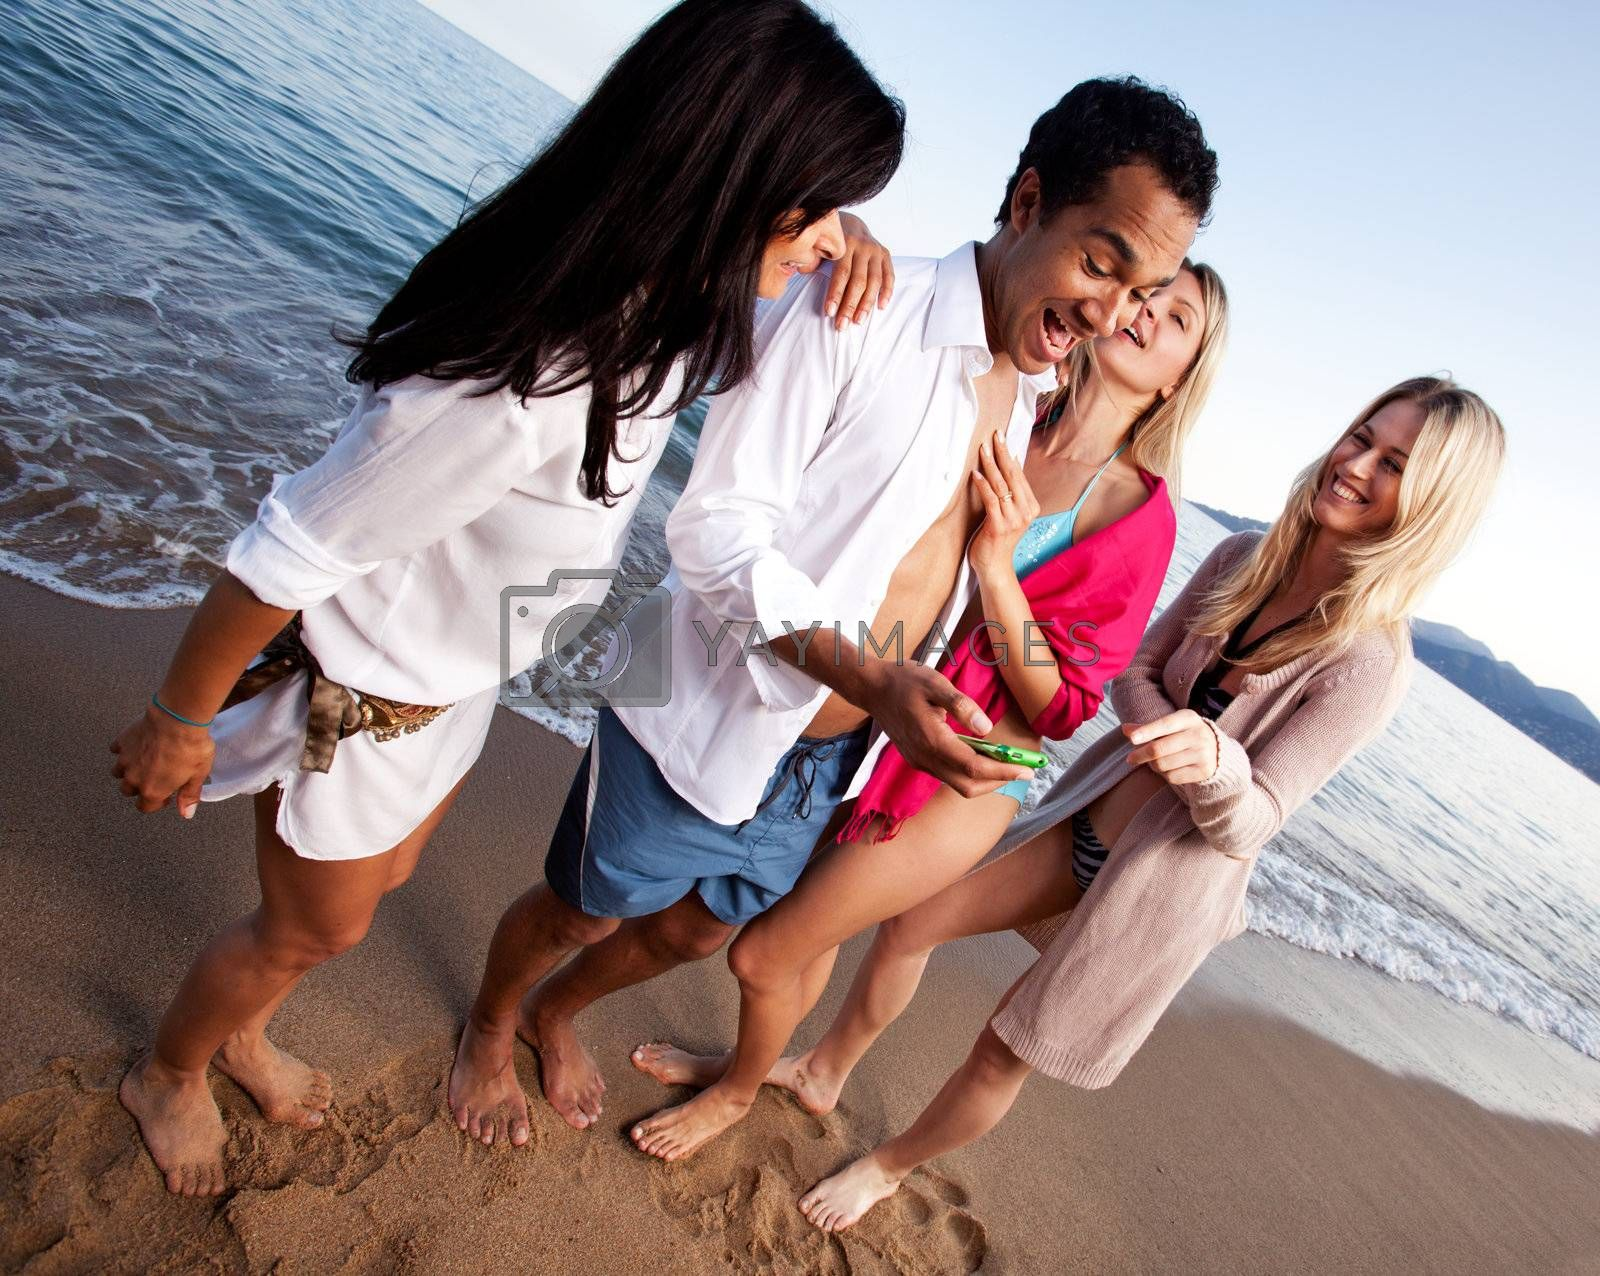 A group of friends having fun at the beach, looking at a cellphone